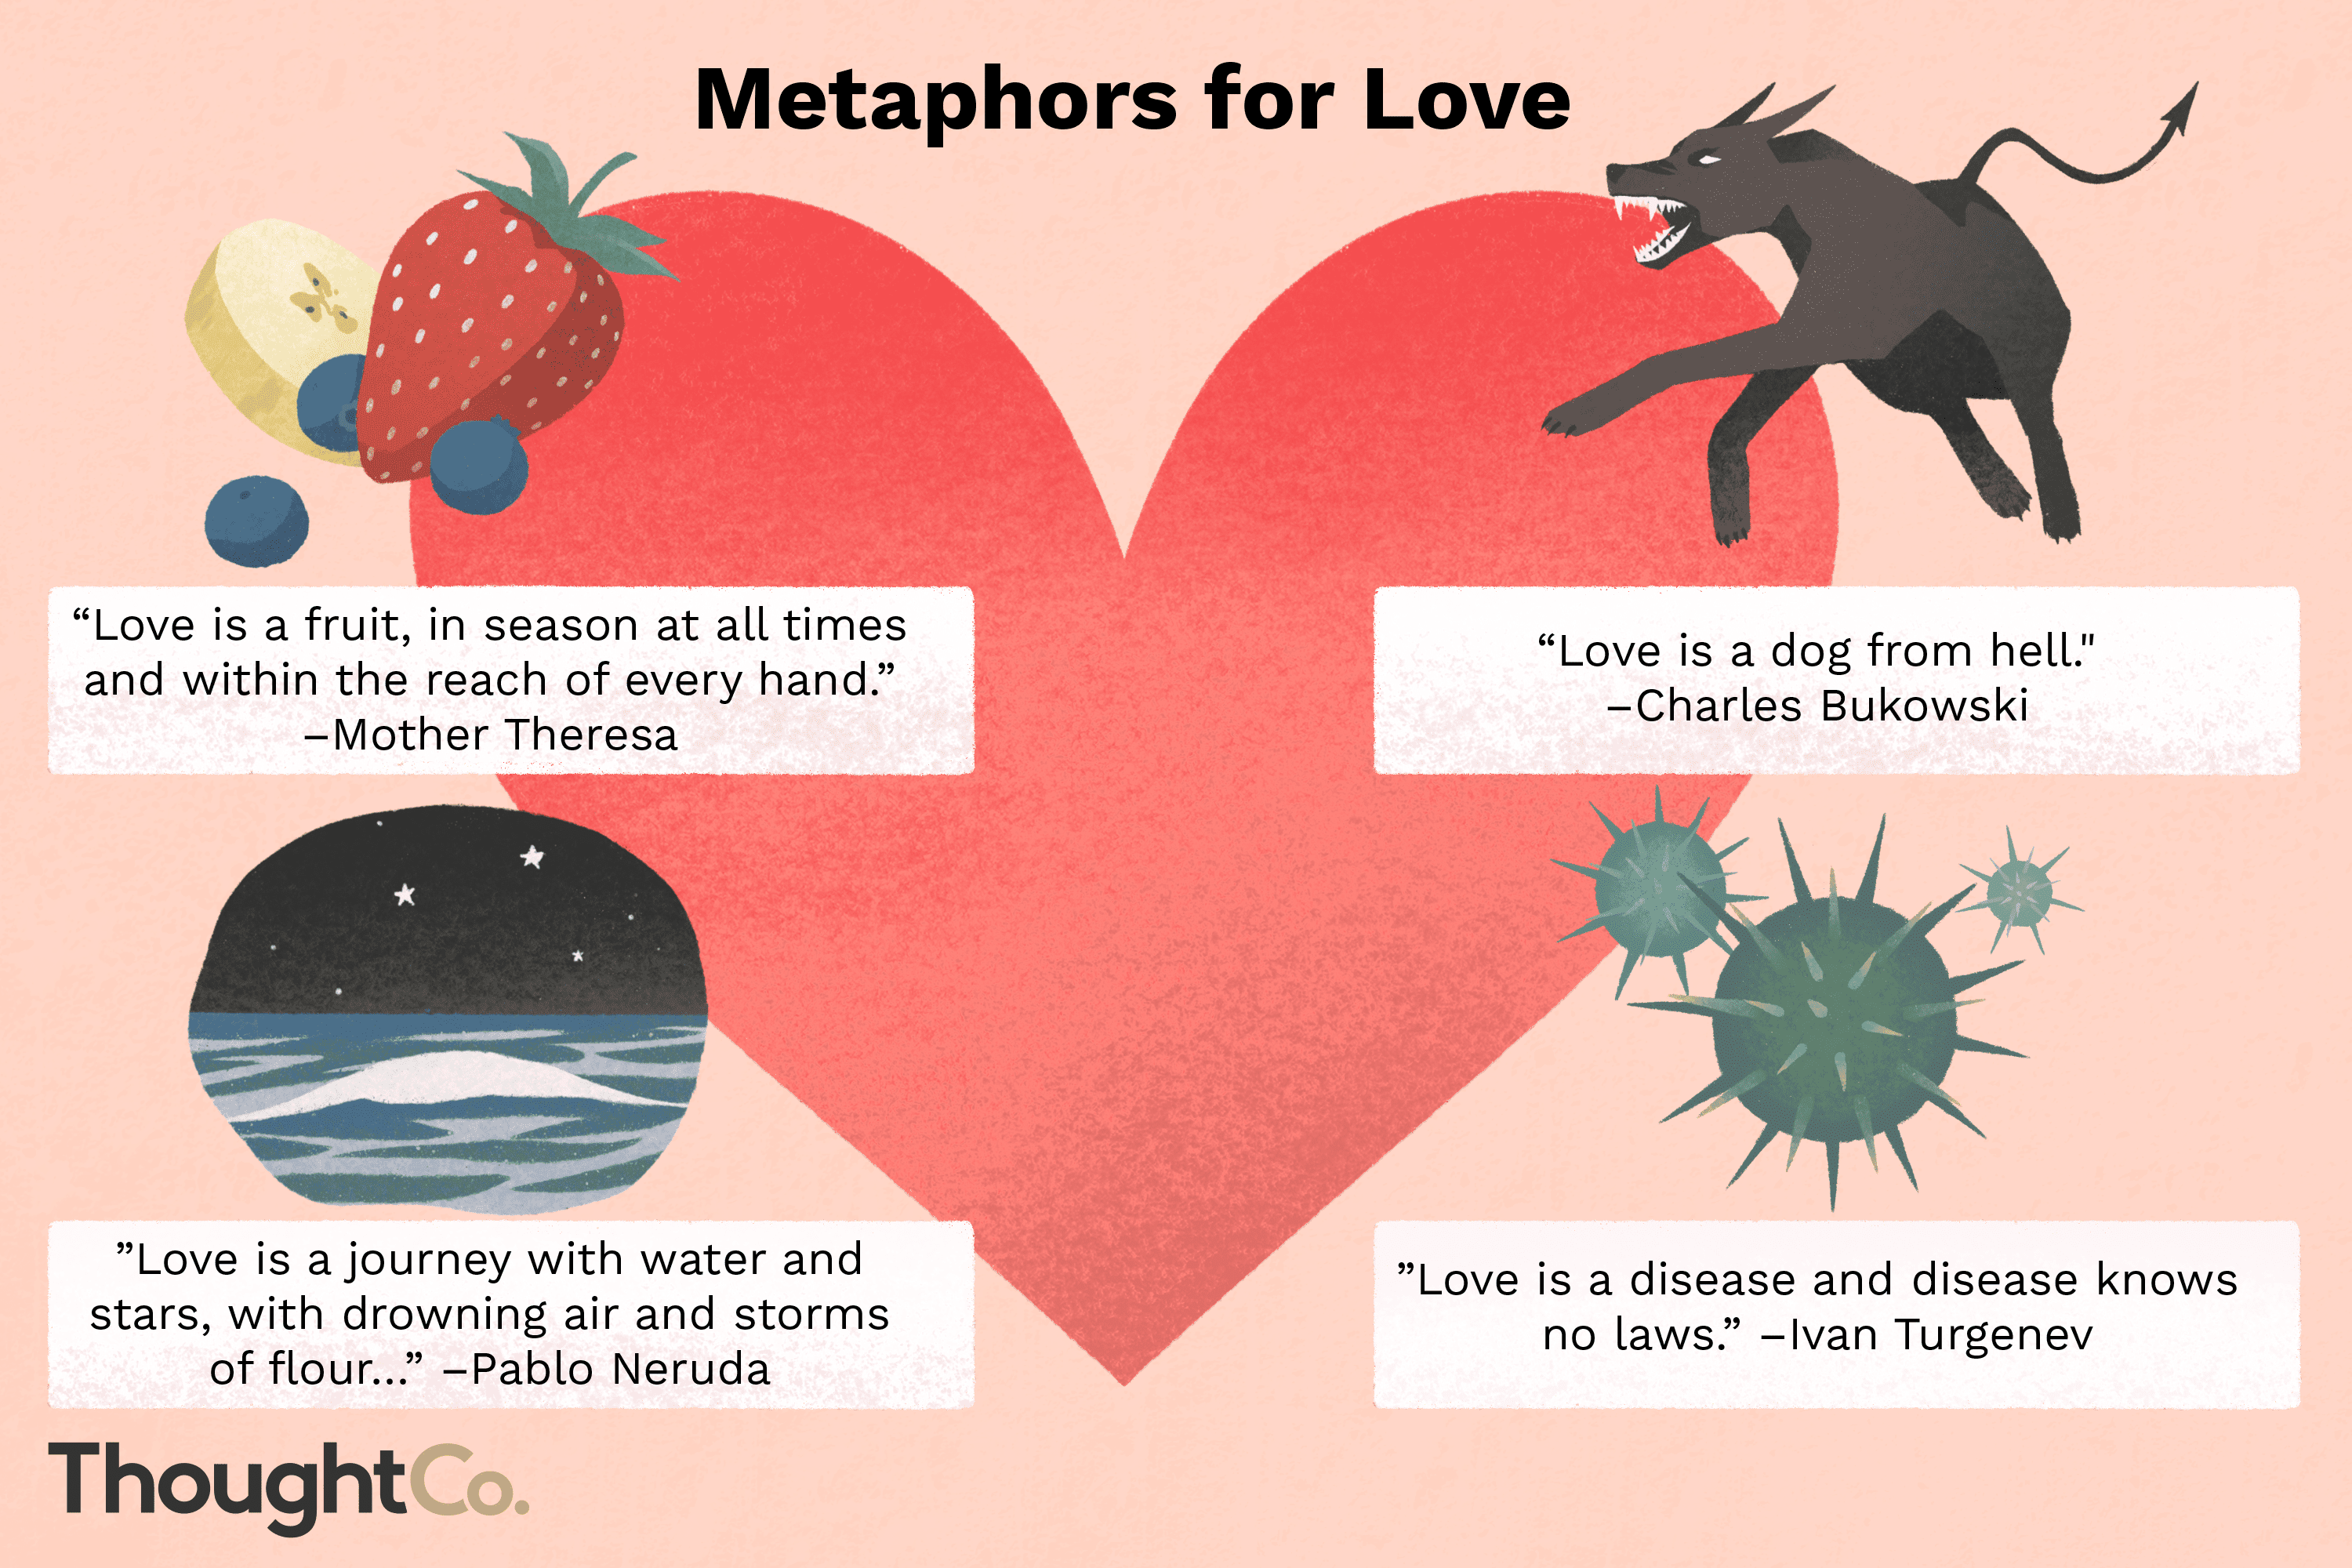 Love Metaphors From Literature and Pop Culture